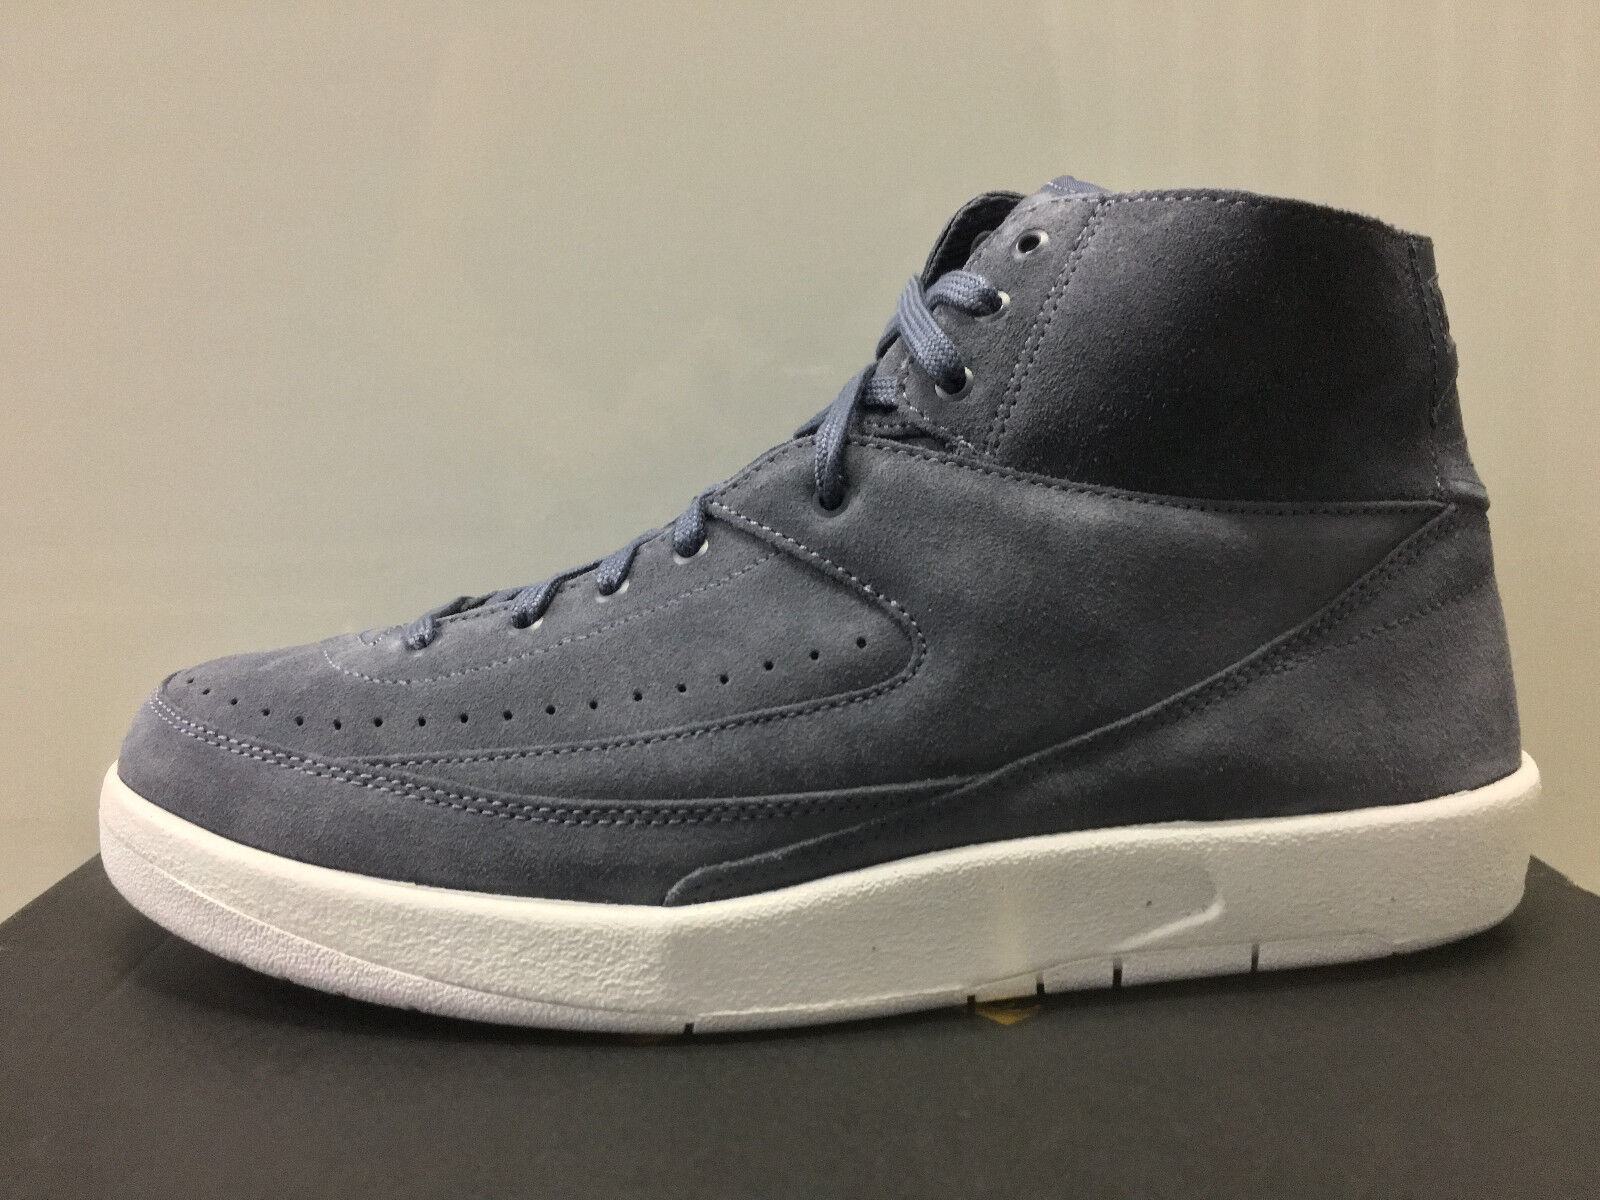 Nike Air Jordan Retro 2 Decon Decon Decon Thunder Blau Suede 897521-402 9-13 1 11 nyc 044c5a